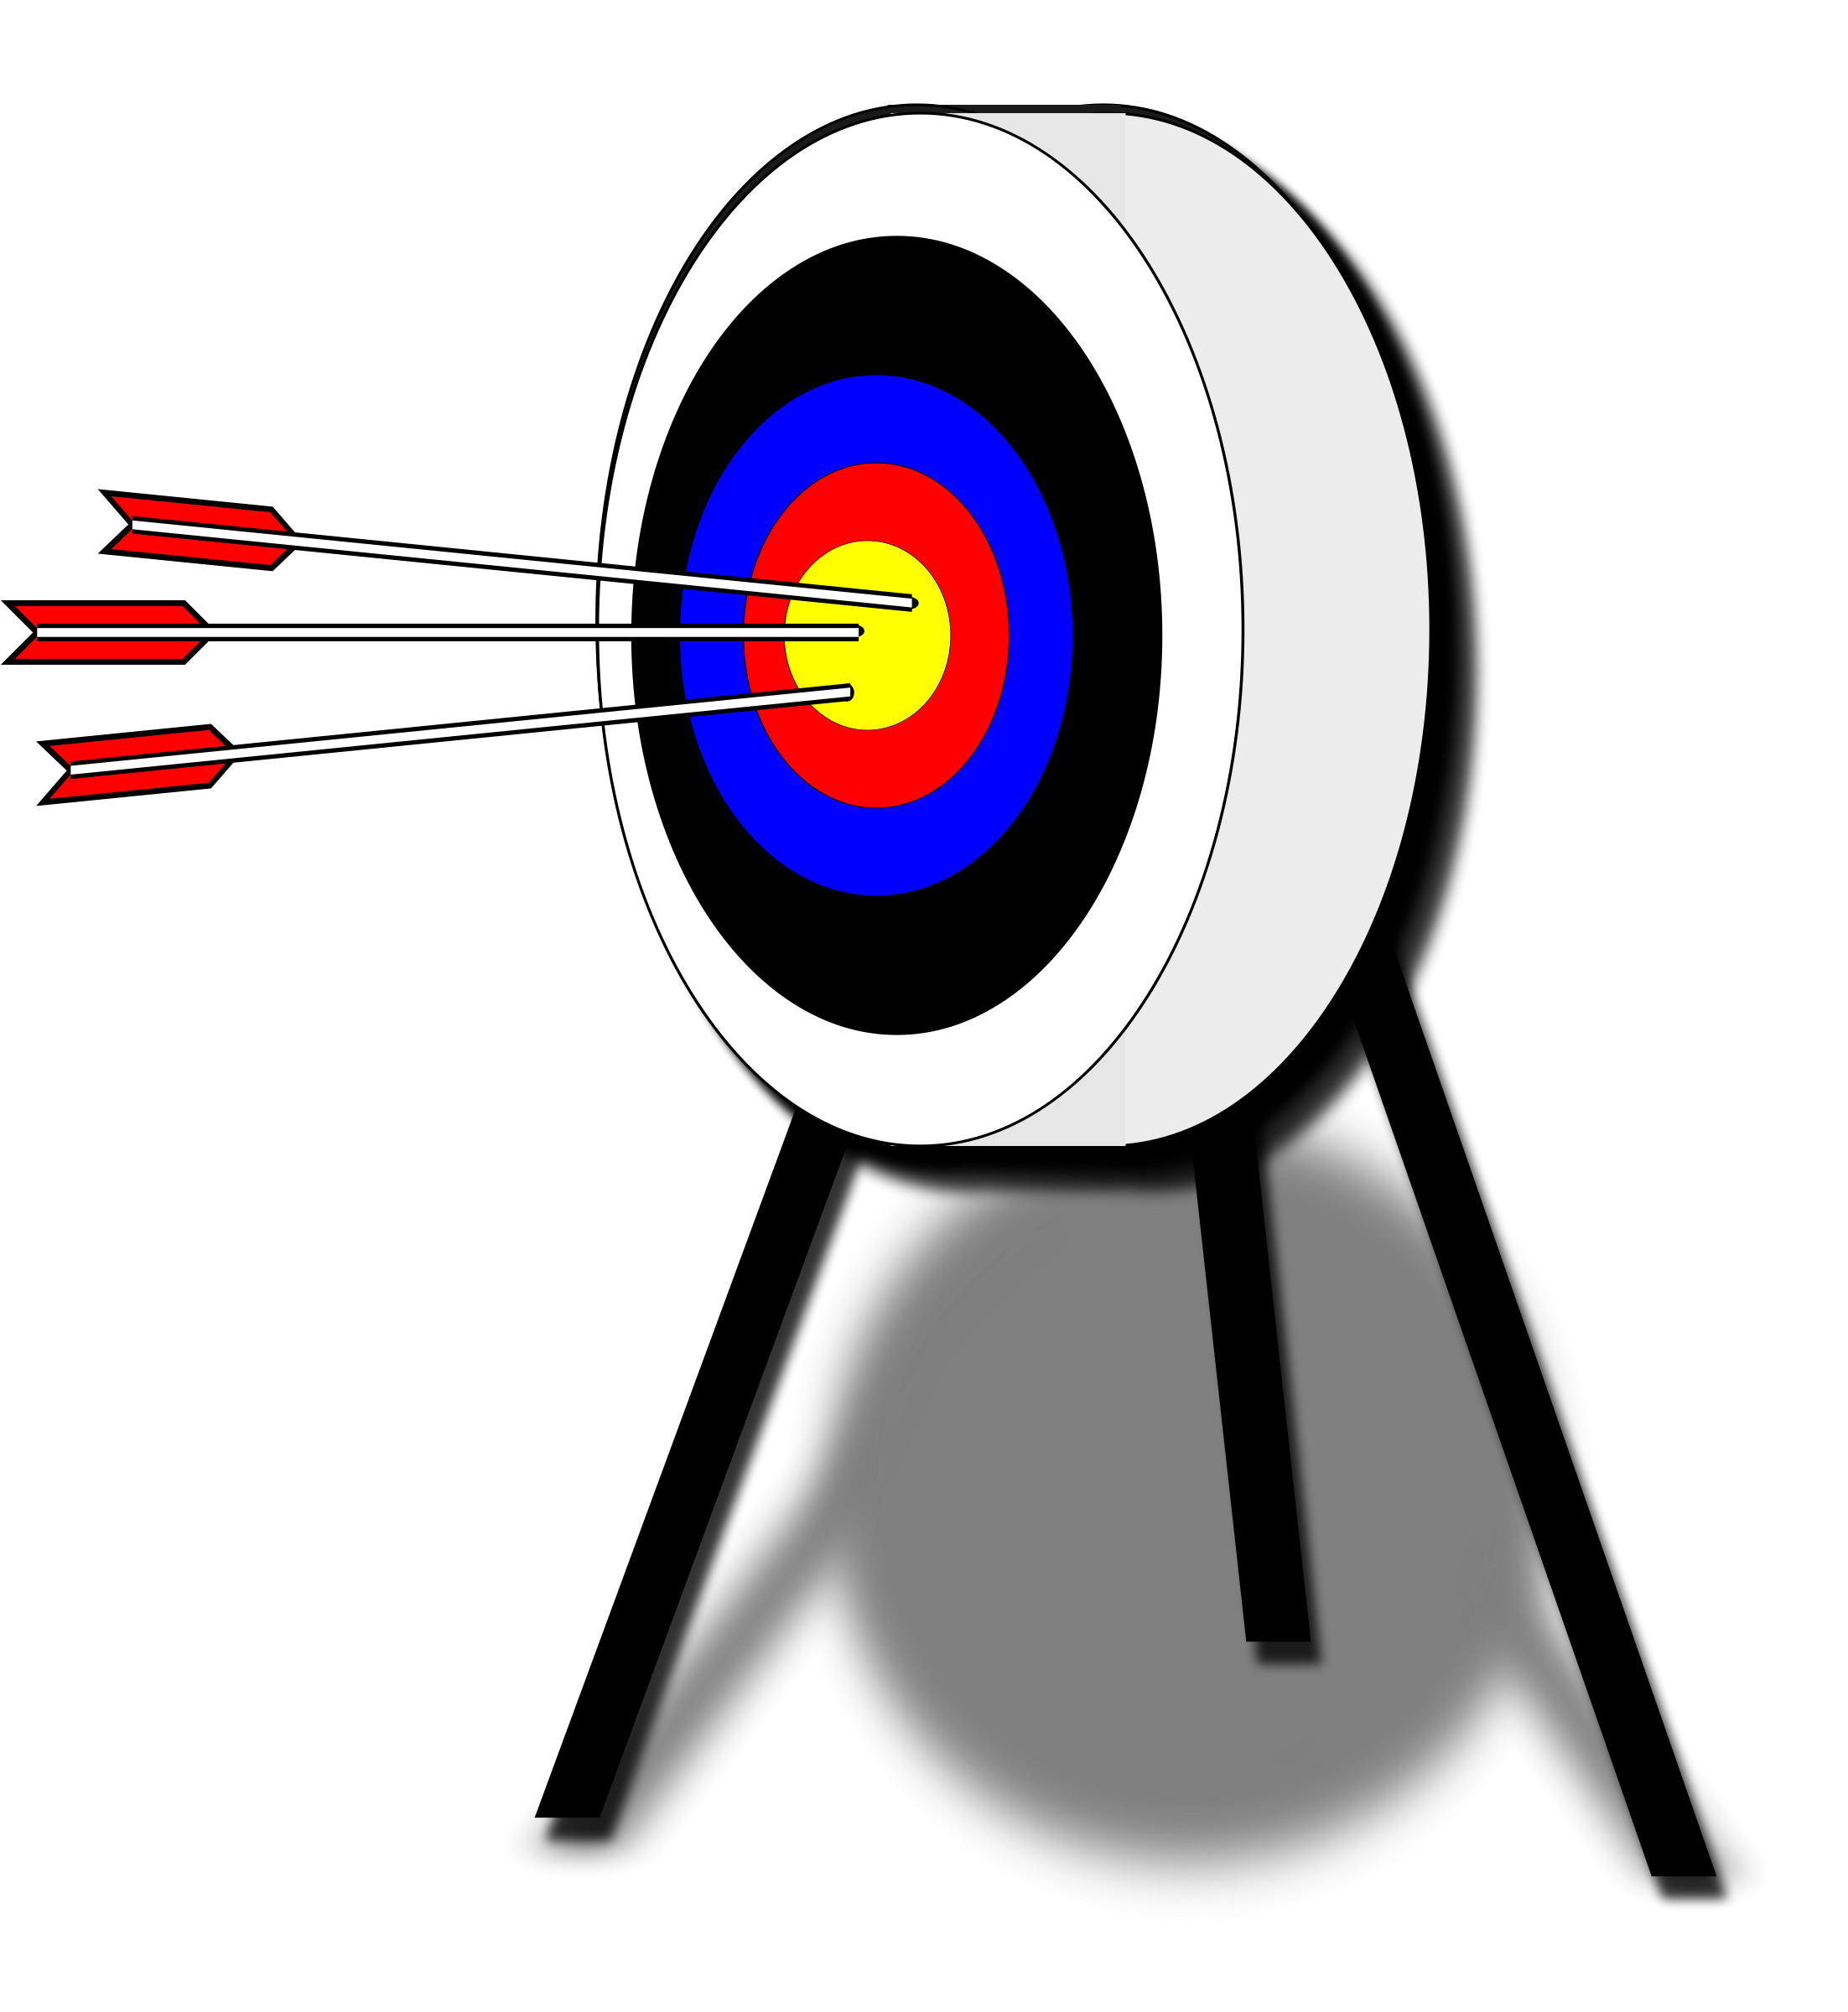 clip art arrow target - photo #11